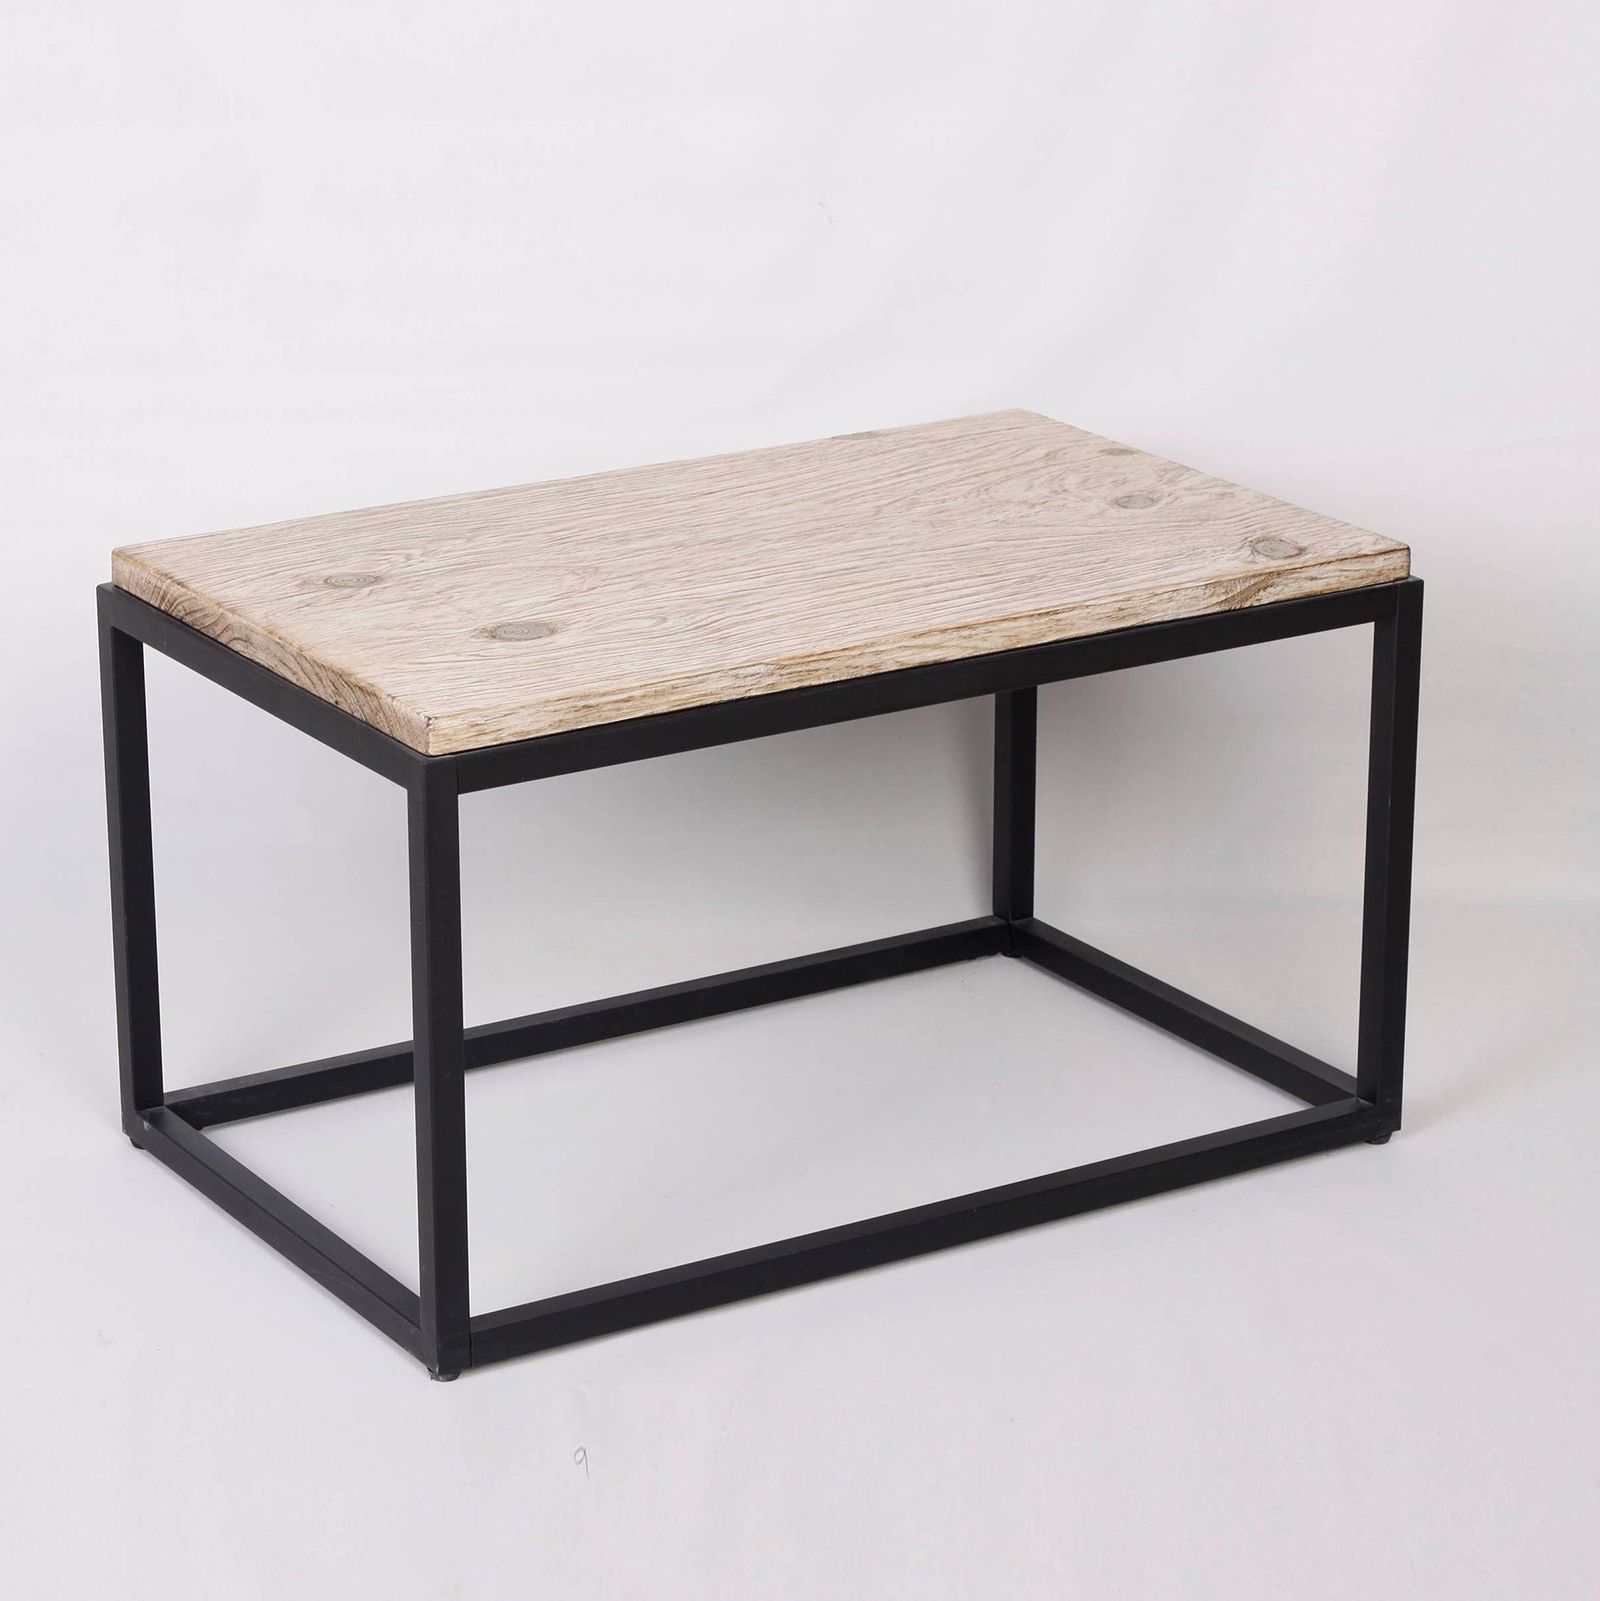 Fabulous Black + White Outdoor Finds at Target - Outdoor Coffee Table